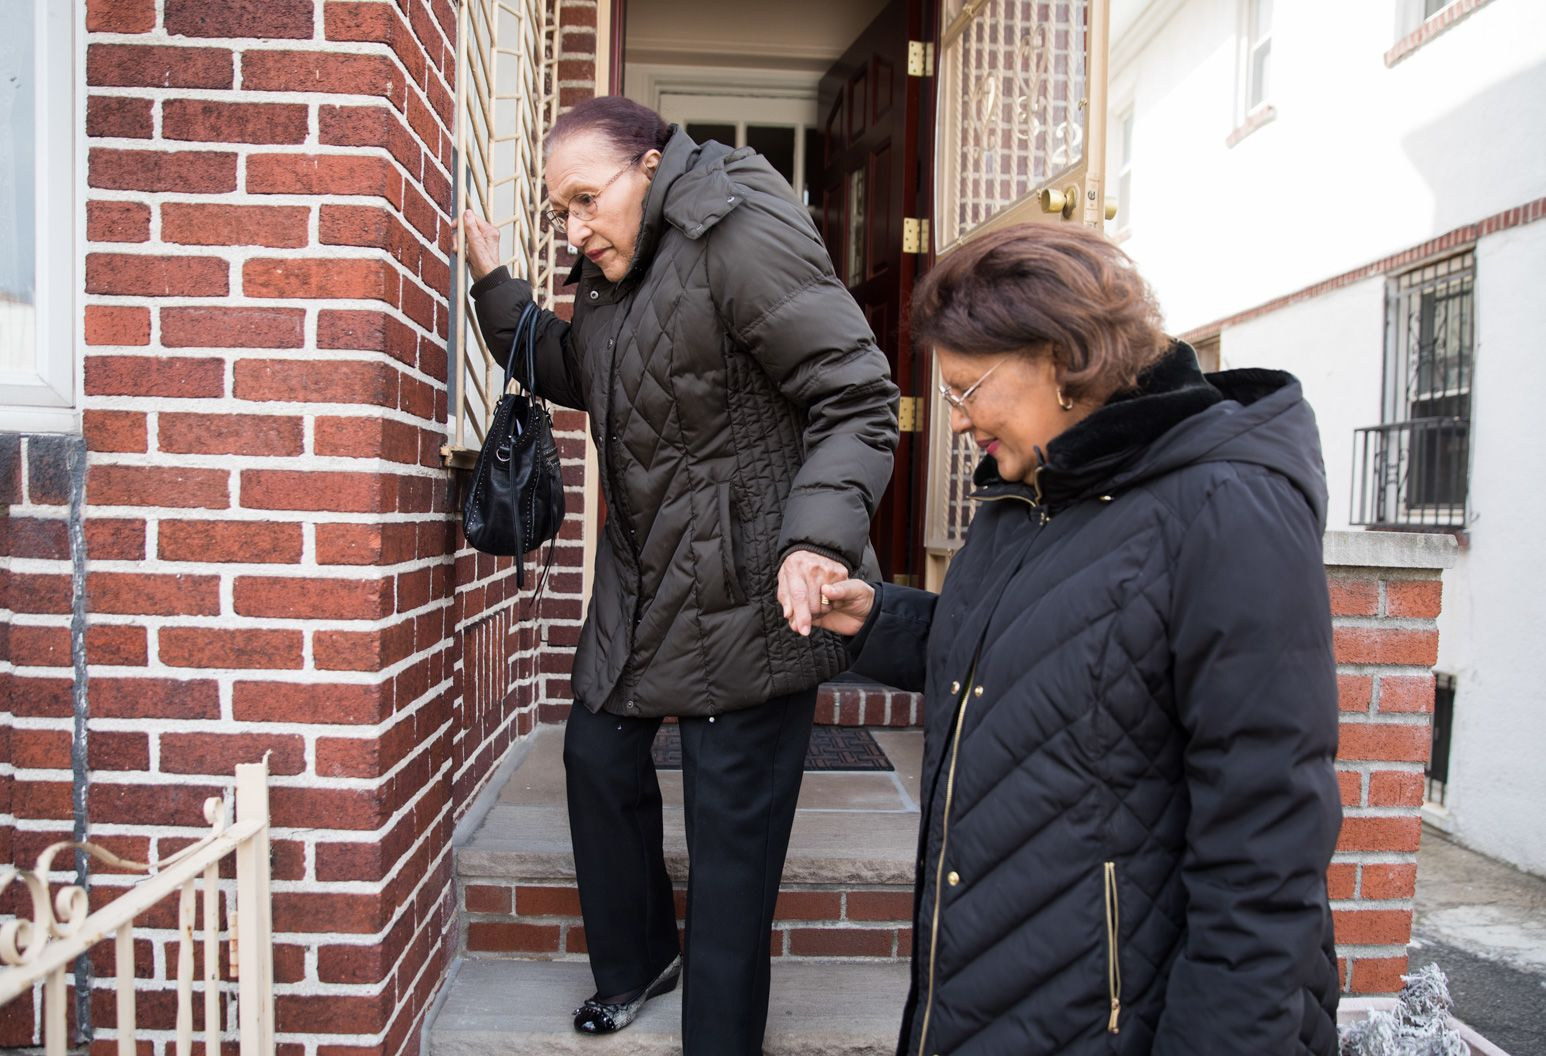 Woman helps older woman walk down the stairs as they leave a home.